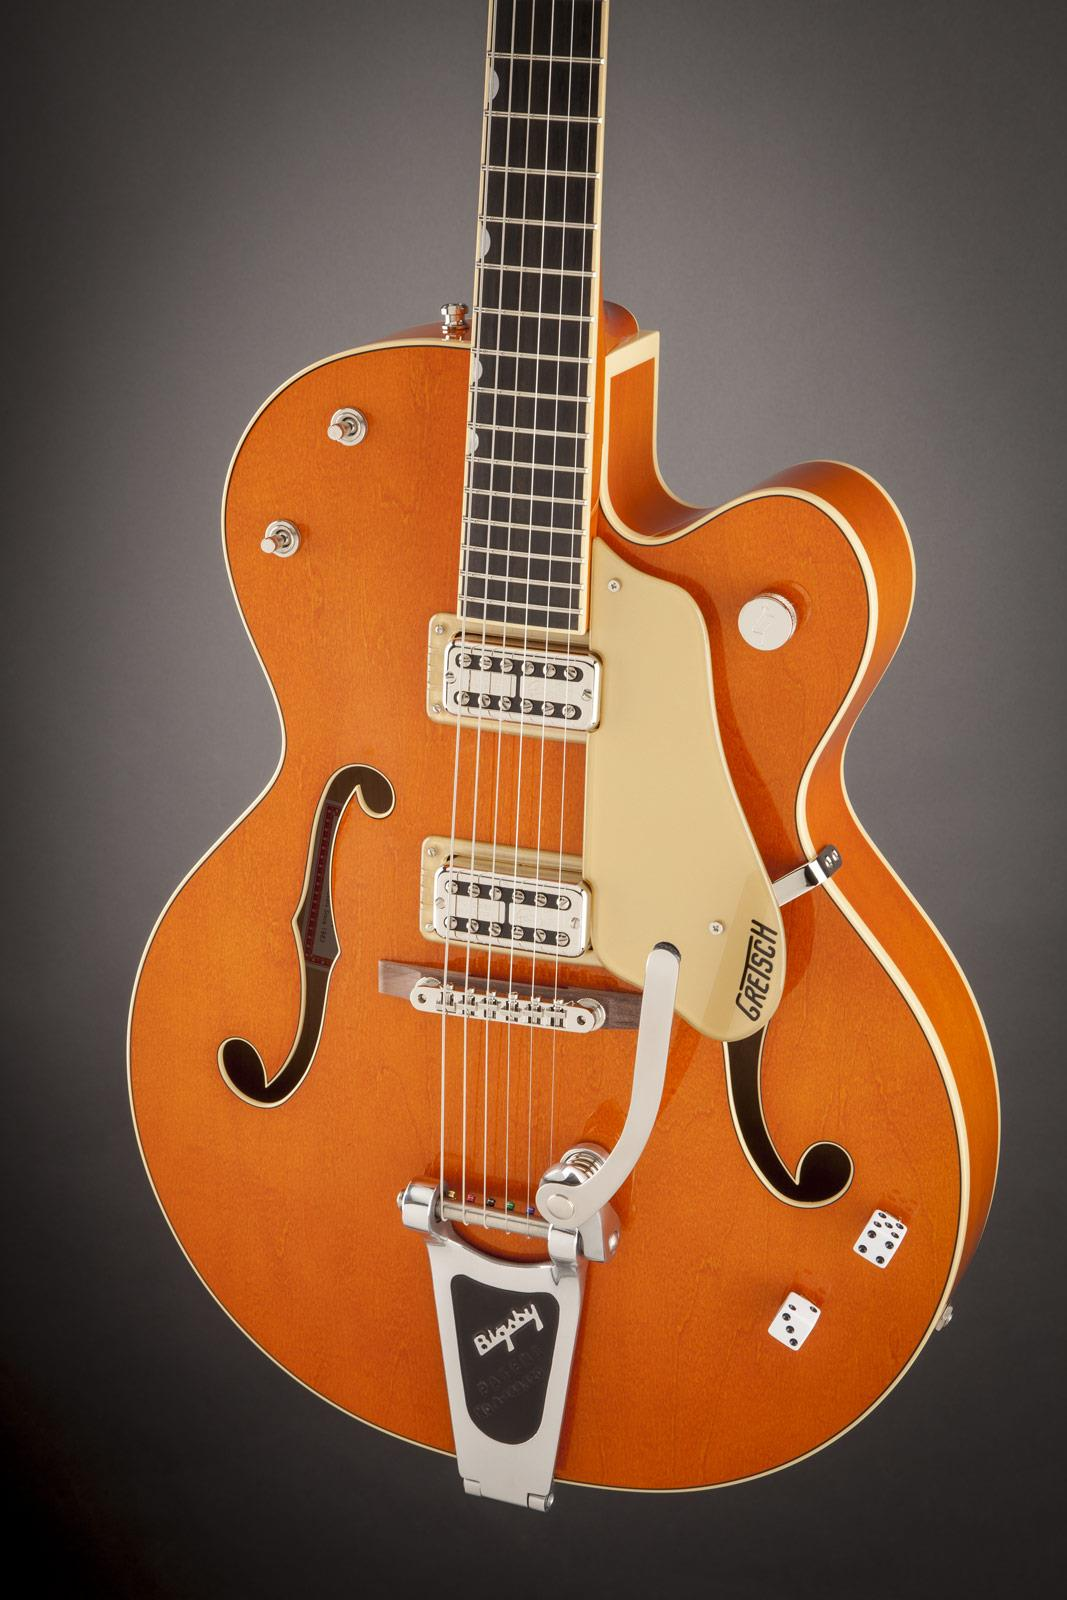 gretsch g6120sslvo brian setzer nashville vintage orange lacquer keymusic. Black Bedroom Furniture Sets. Home Design Ideas